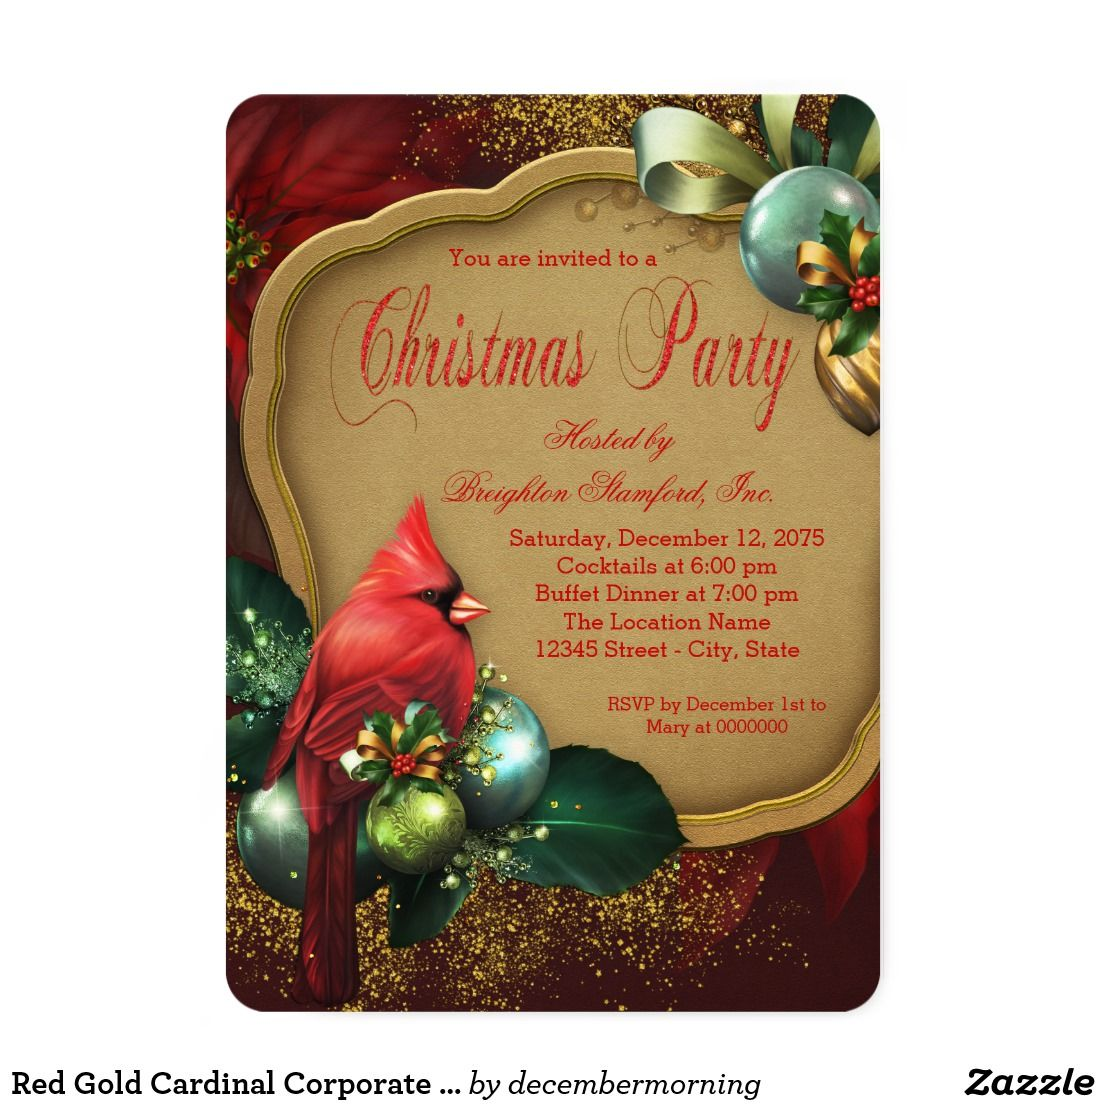 Red Gold Cardinal Corporate Christmas Party Card | Party invitations